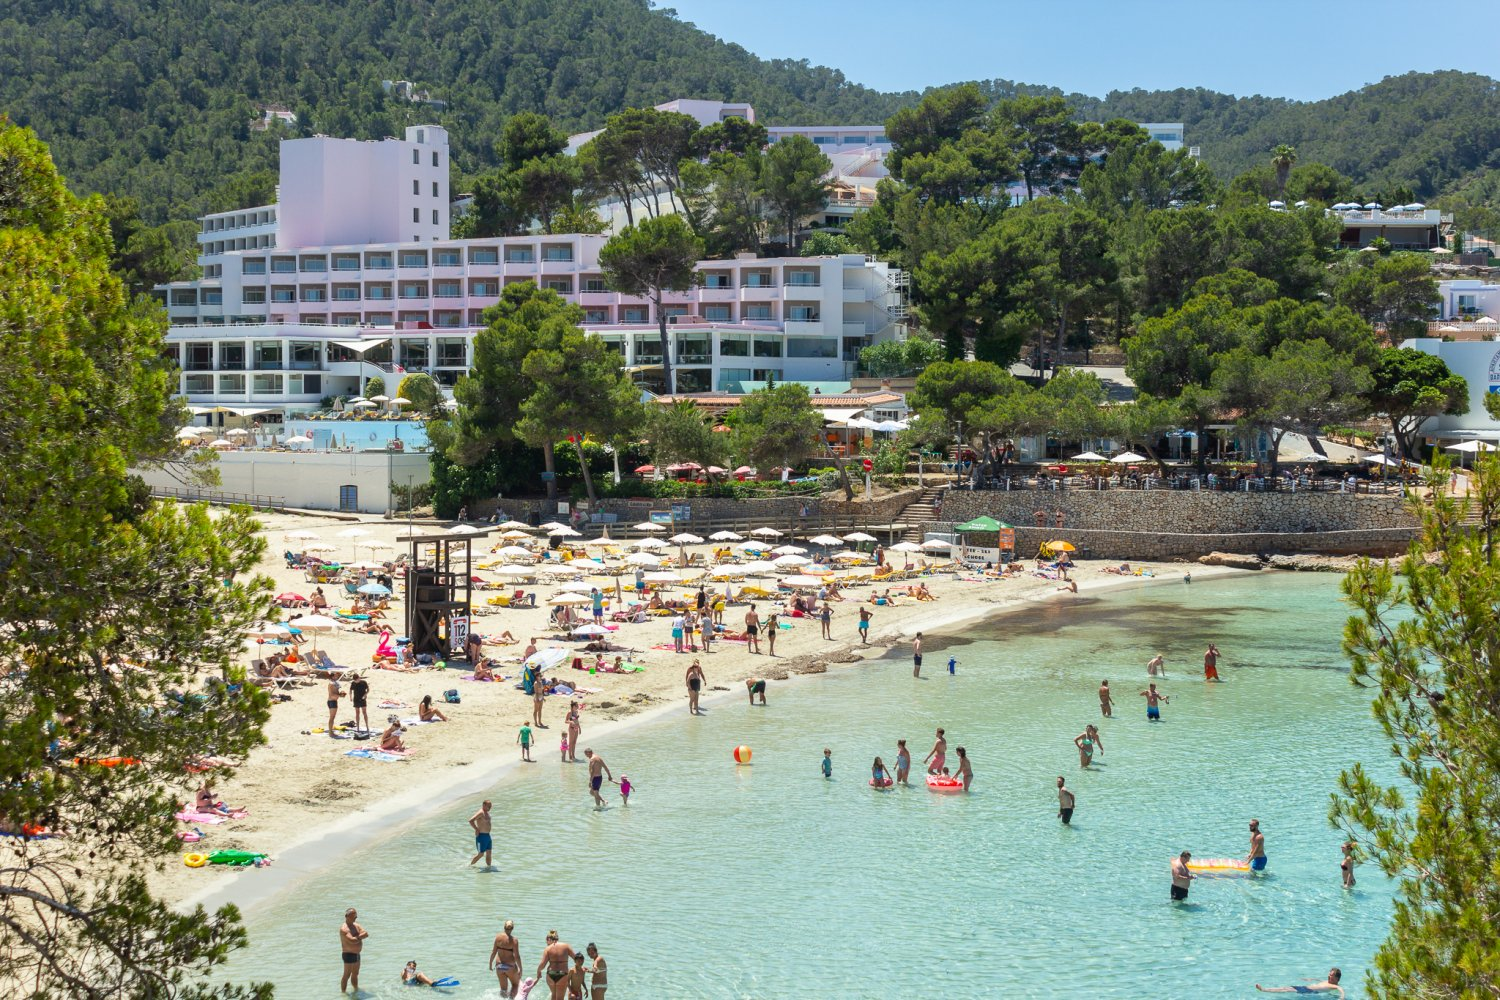 Portinatx Is A Complete Mini Resort Offering Crystal Clear Waters And Stunning Scenery With Accommodation Facilities To Ensure Stress Free Bliss